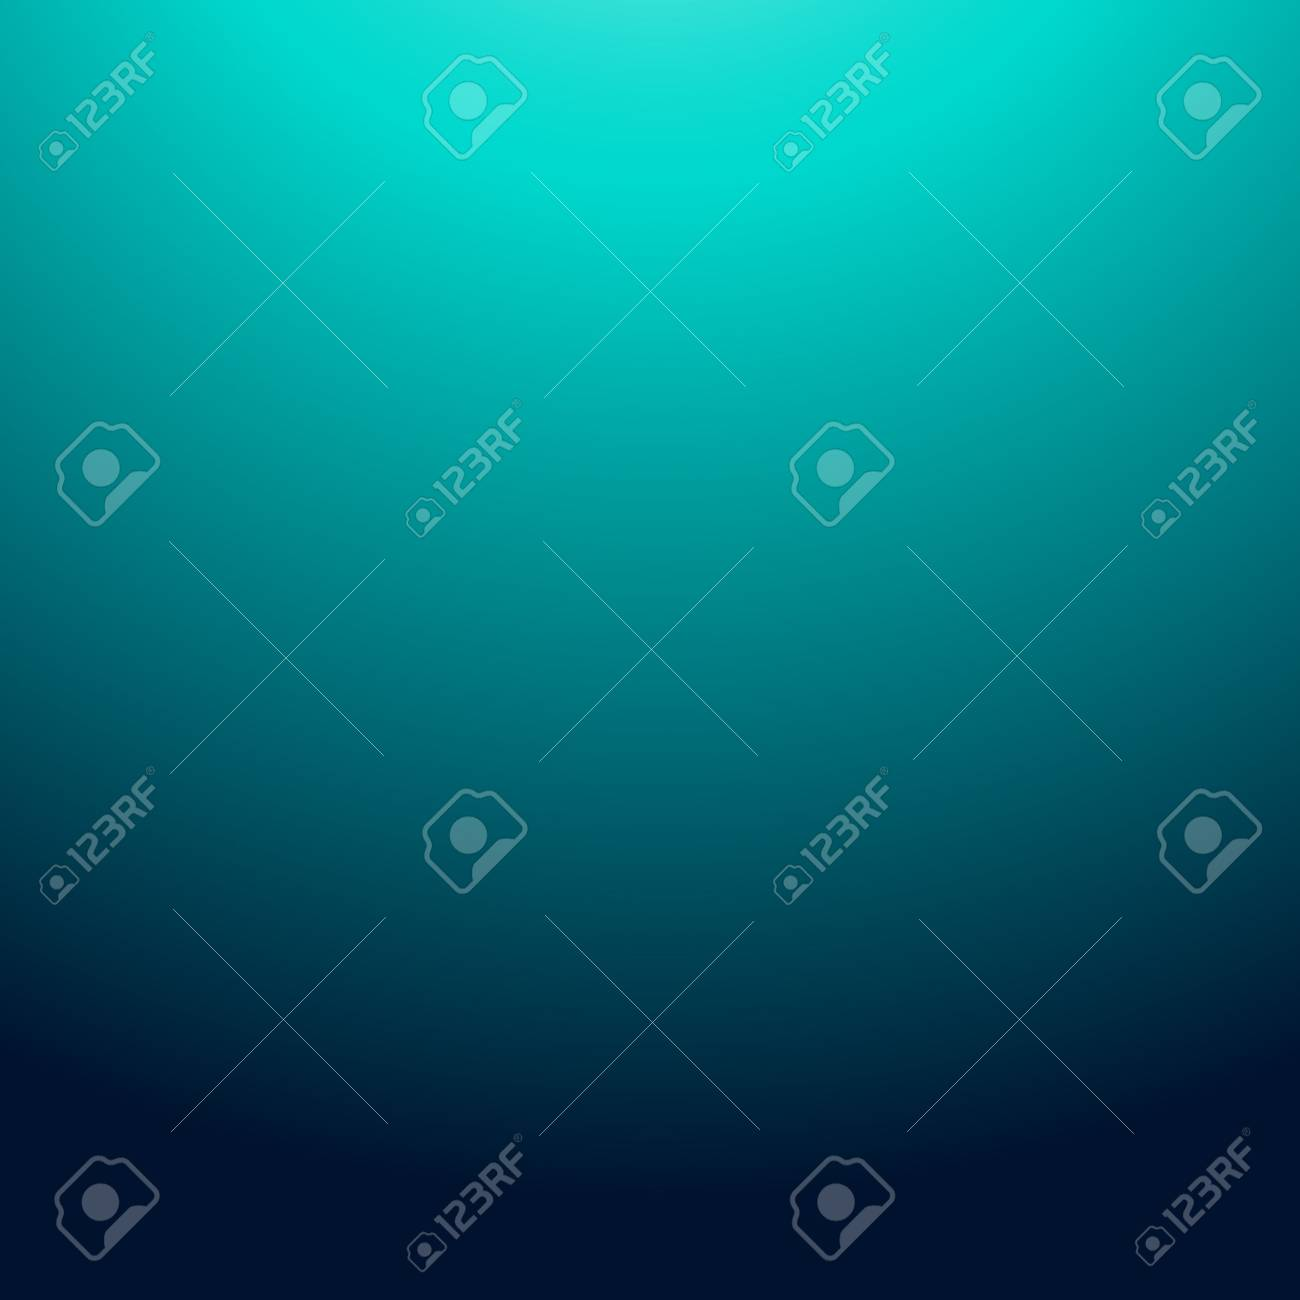 Gradient blurred Blue abstract background - 77056757